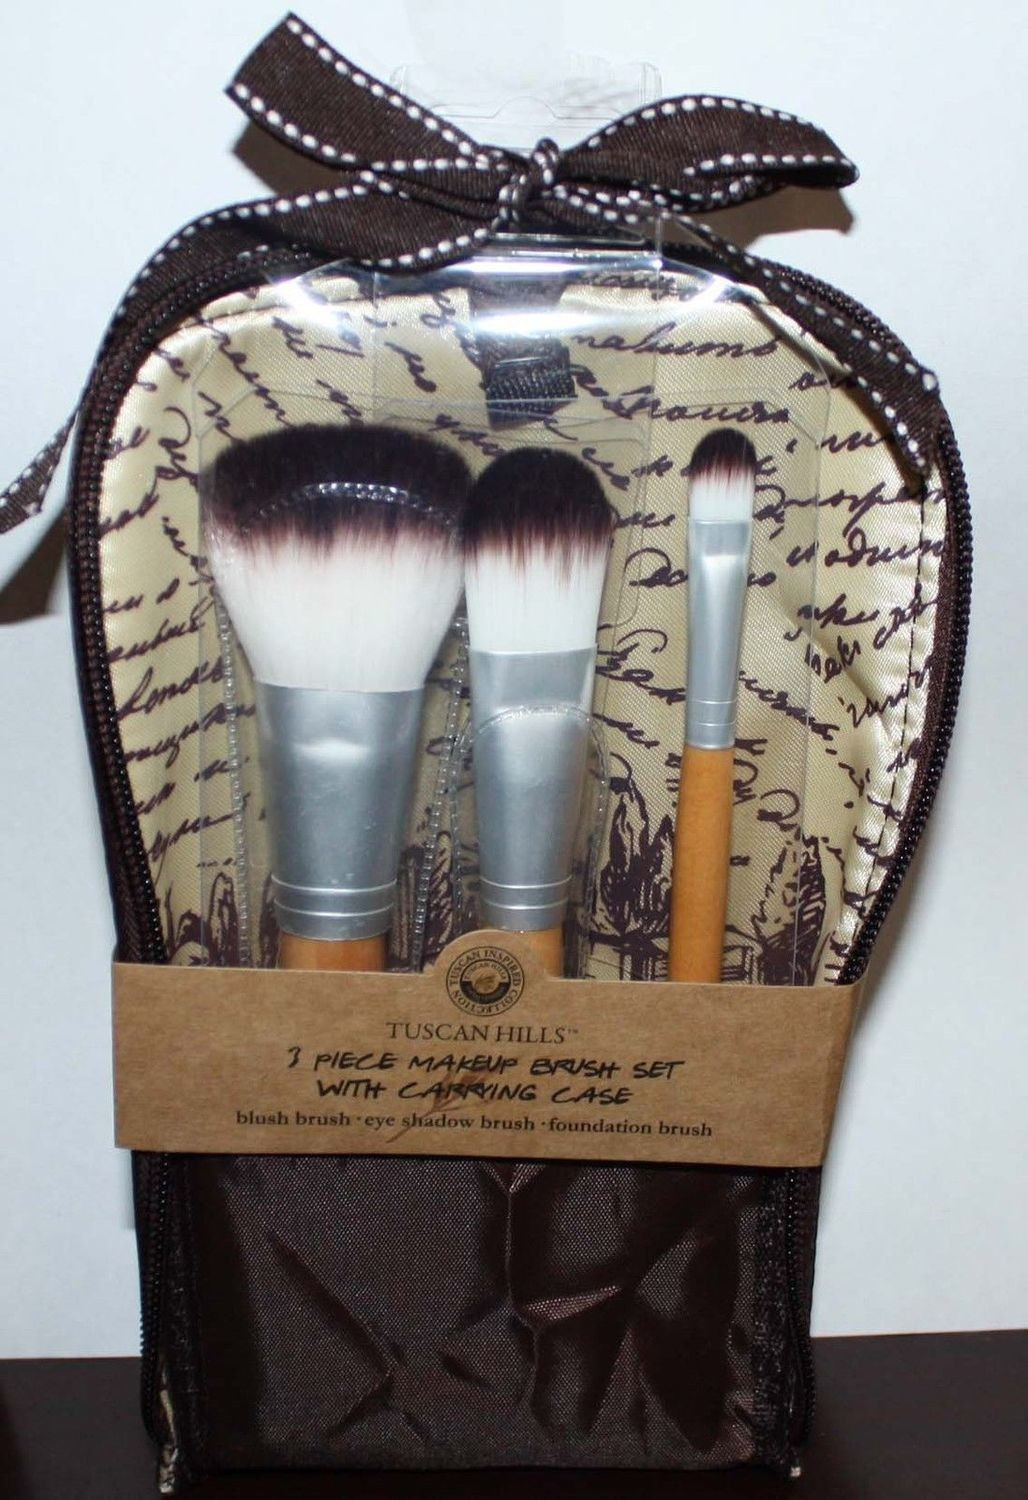 Tuscan Hills 3 Pc Makeup Brush Set With Carrying Case